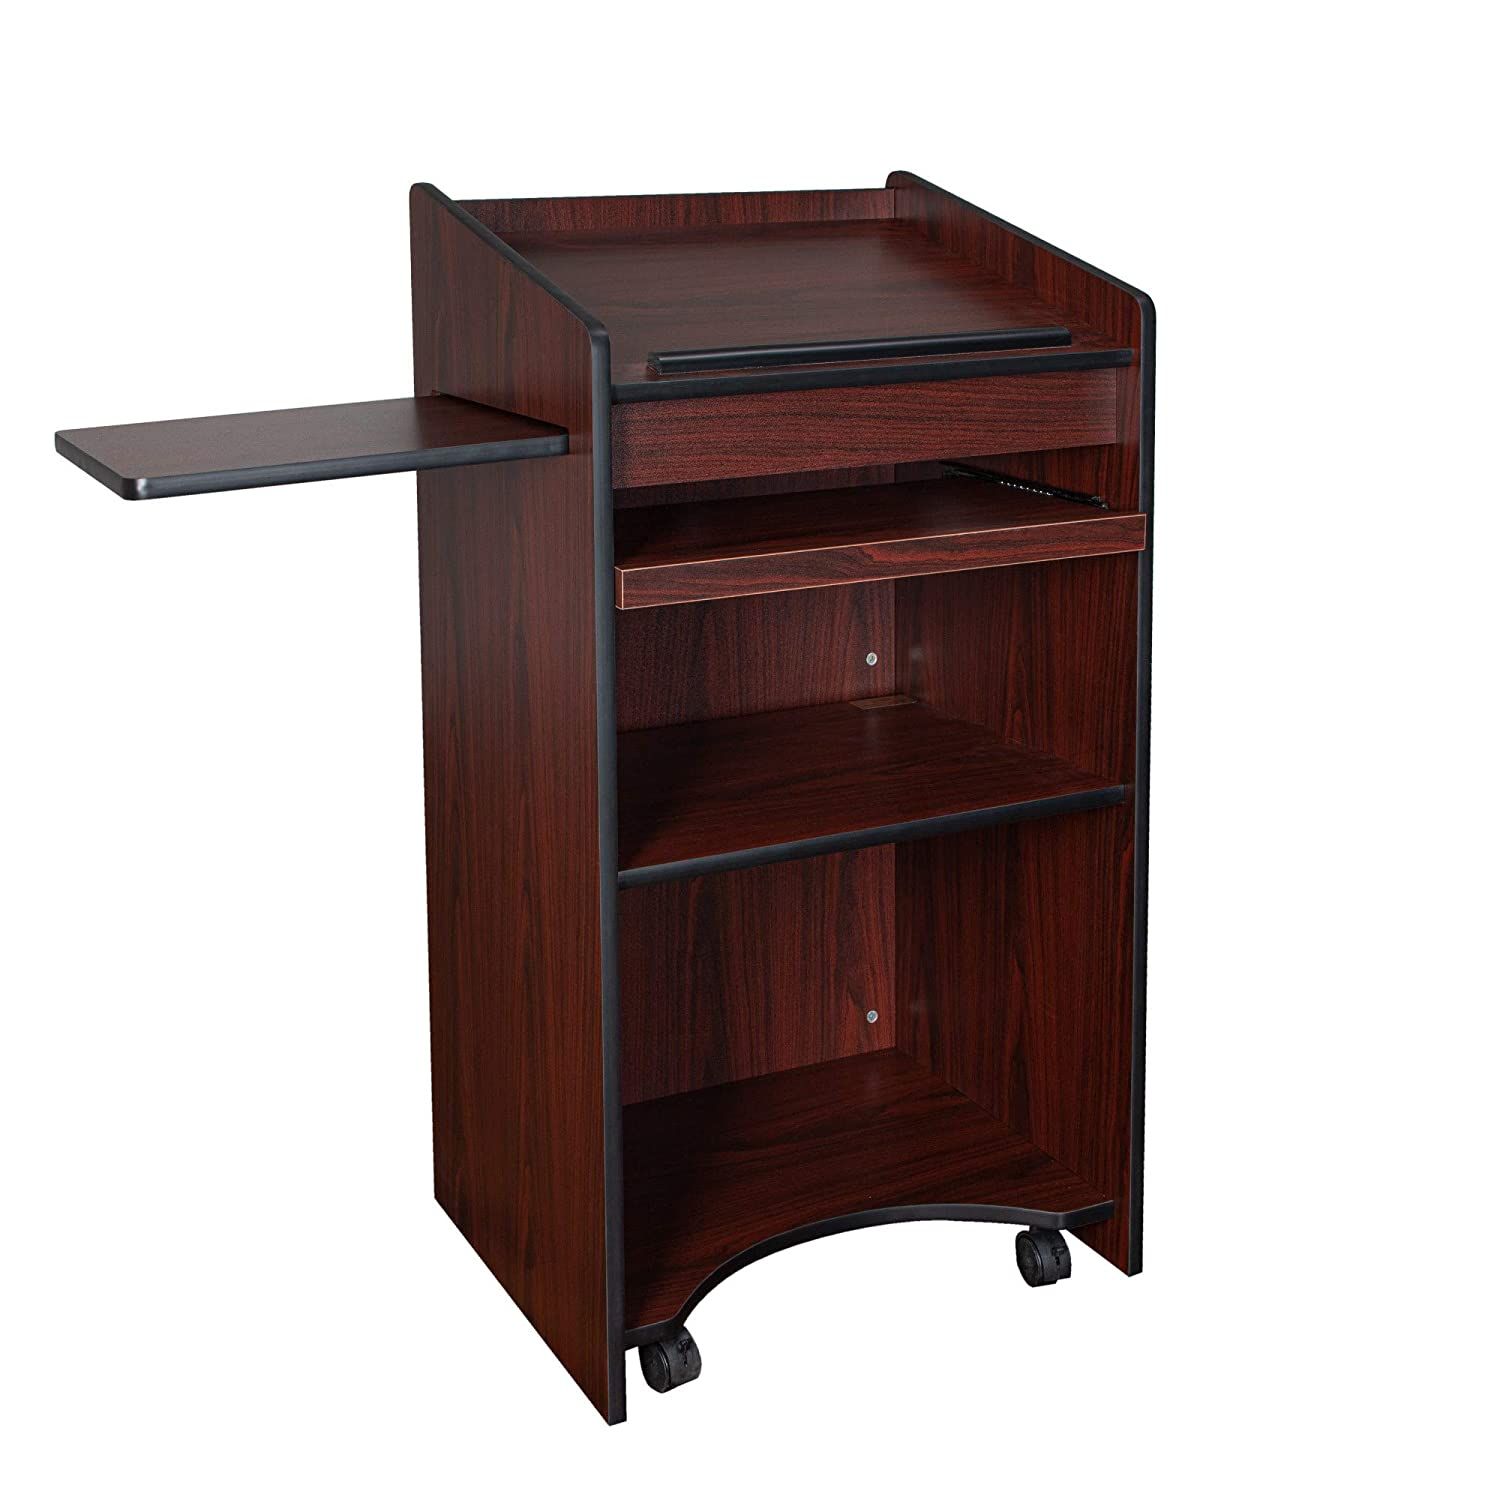 OEF Furnishings Mobile Floor Lectern Keyboar Side with OFFicial mail order SEAL limited product Shelf And